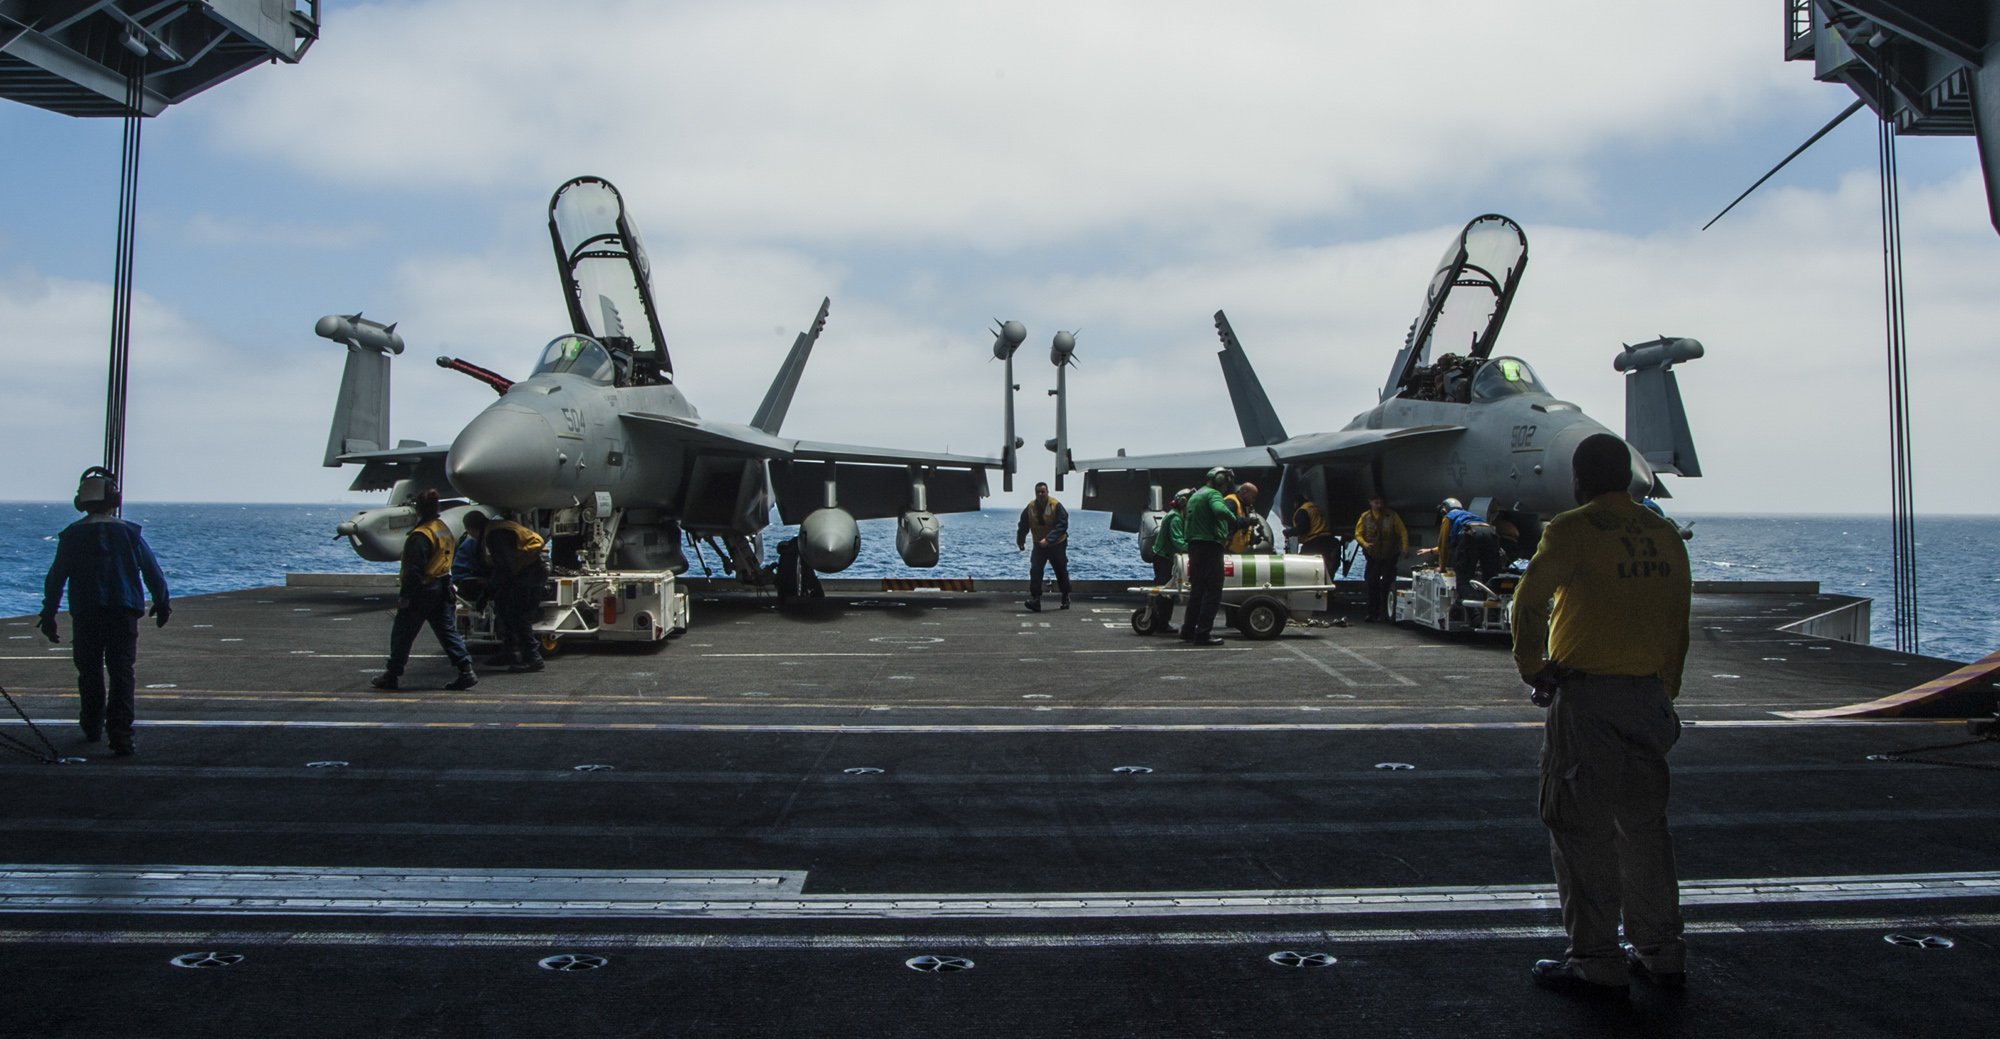 Two EA-18G Growlers assigned to the Cougars of Electronic Attack Squadron (VAQ) 139 to the flight deck. on USS Carl Vinson (CVN-70) on May 31, 2014. US Navy Photo